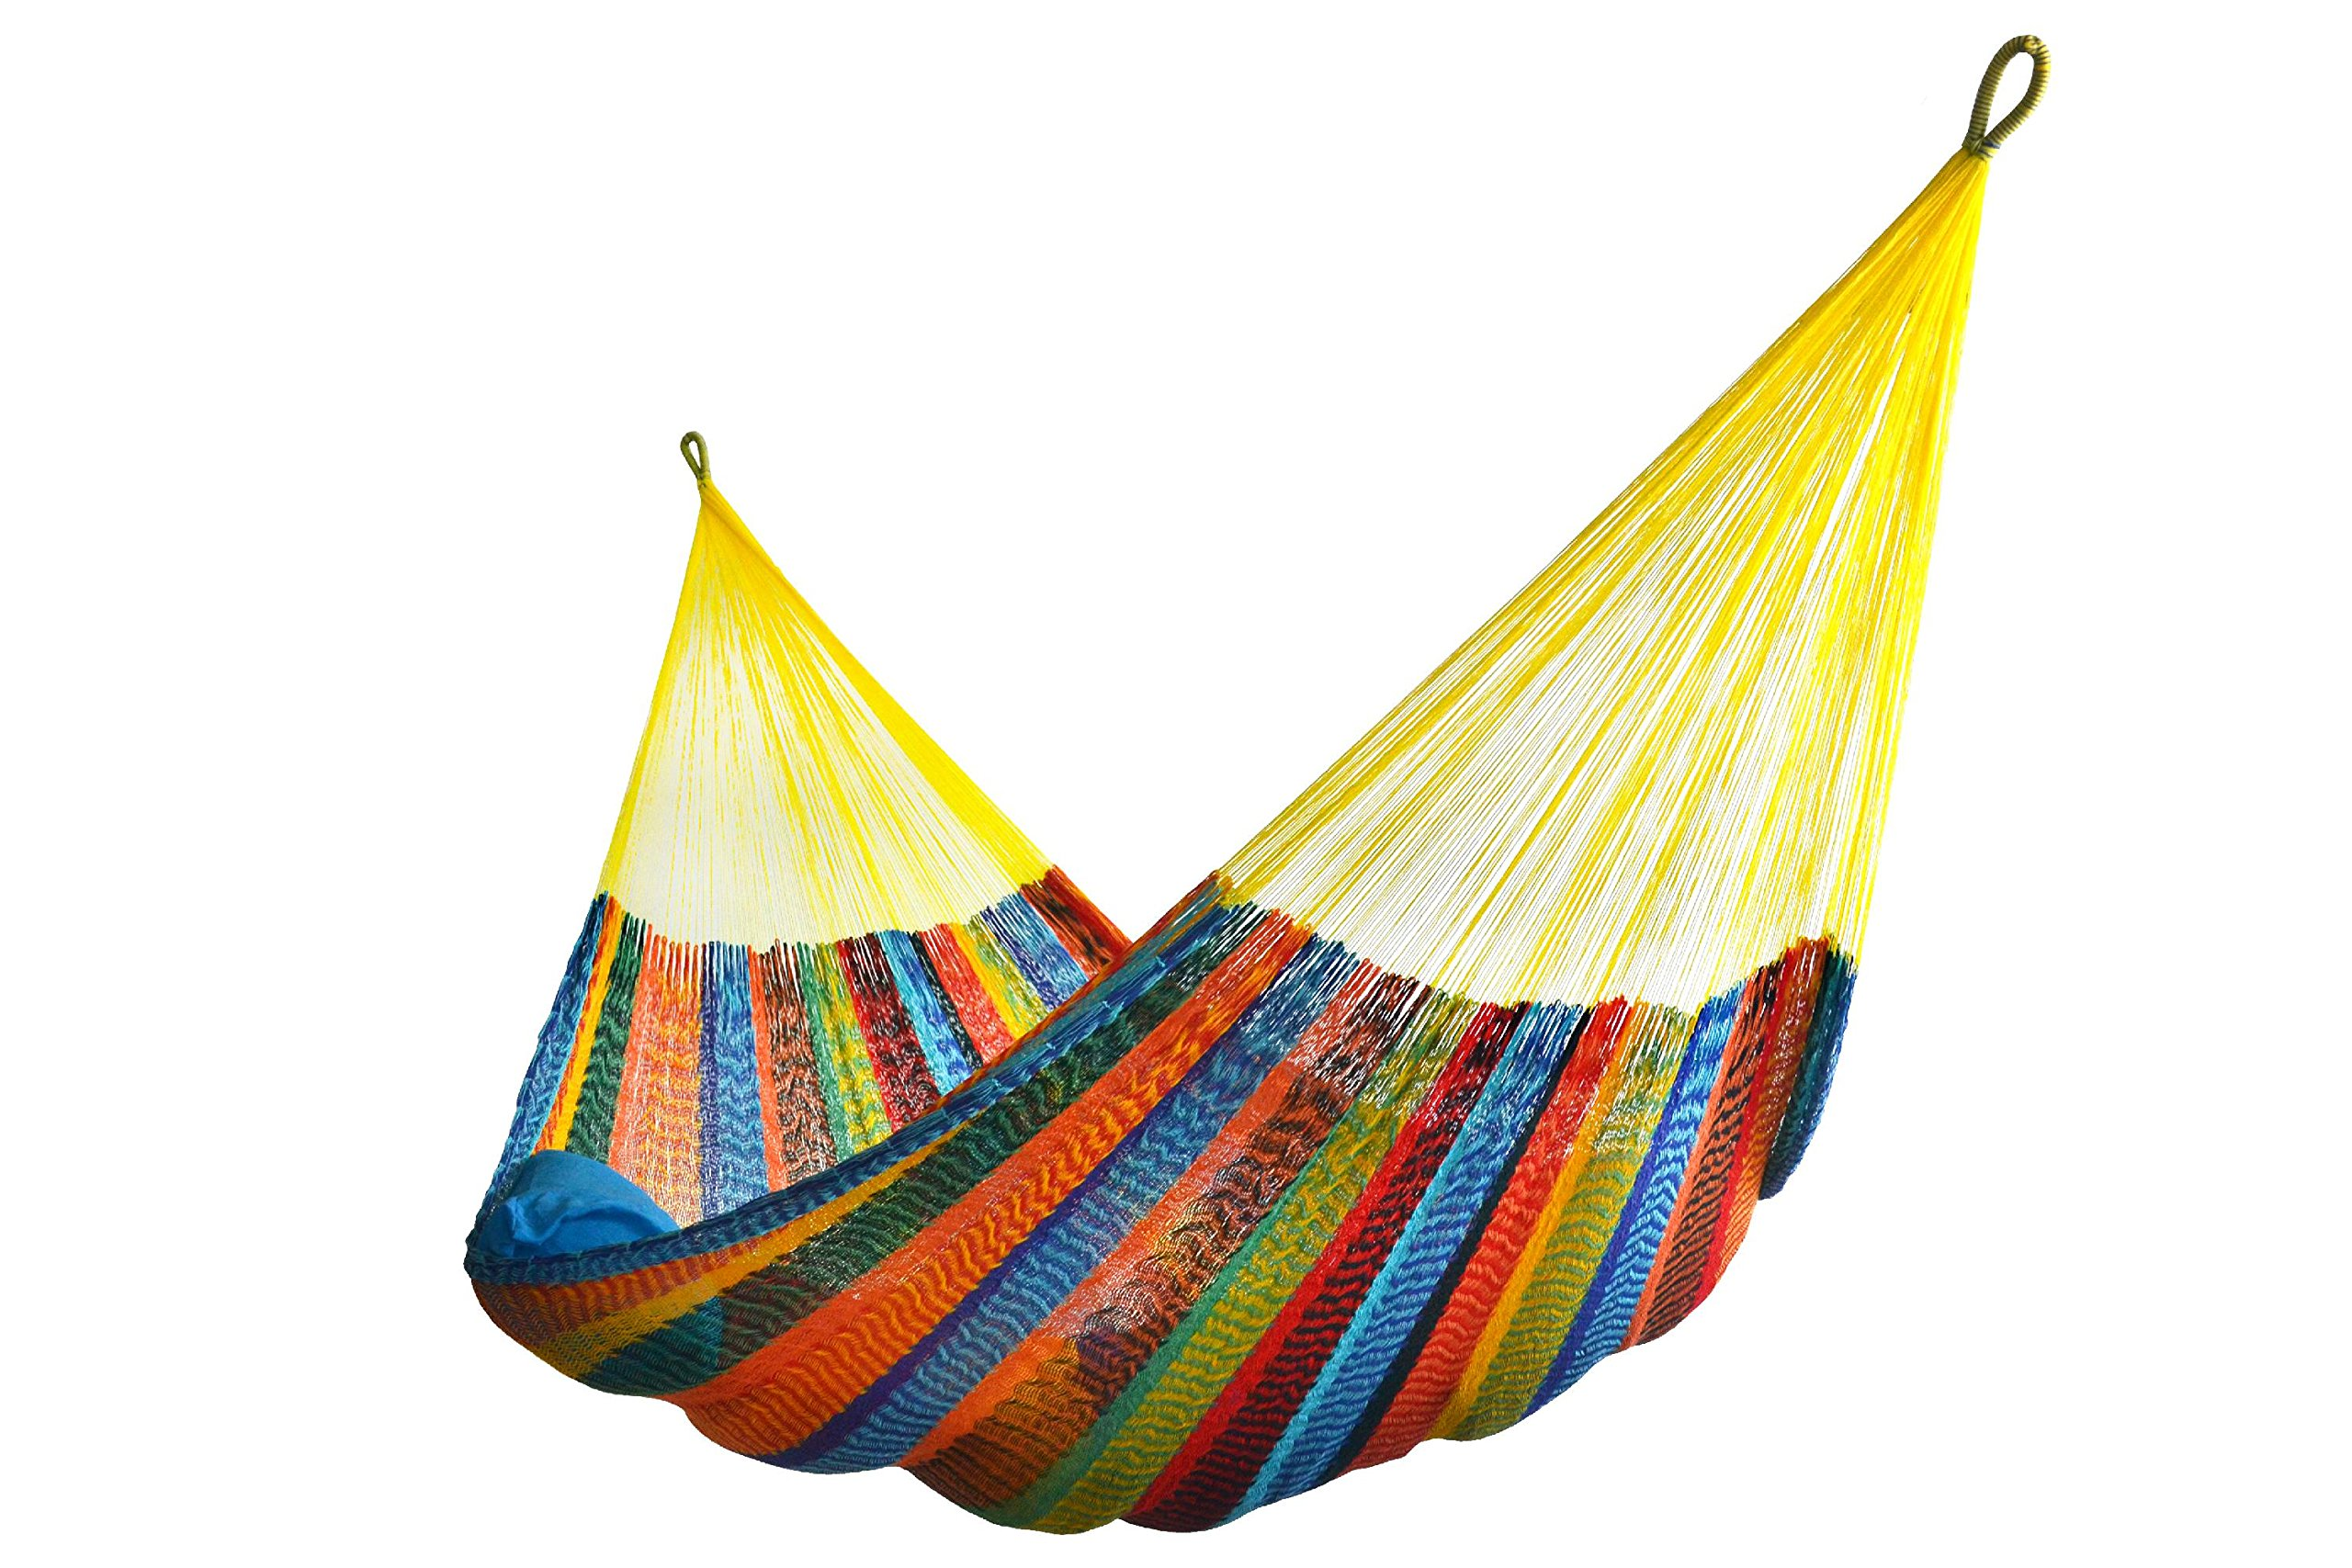 Hammocks Rada TM - Jumbo Size Multicolor - Largest Hammock by UPS in 2 Days at Door